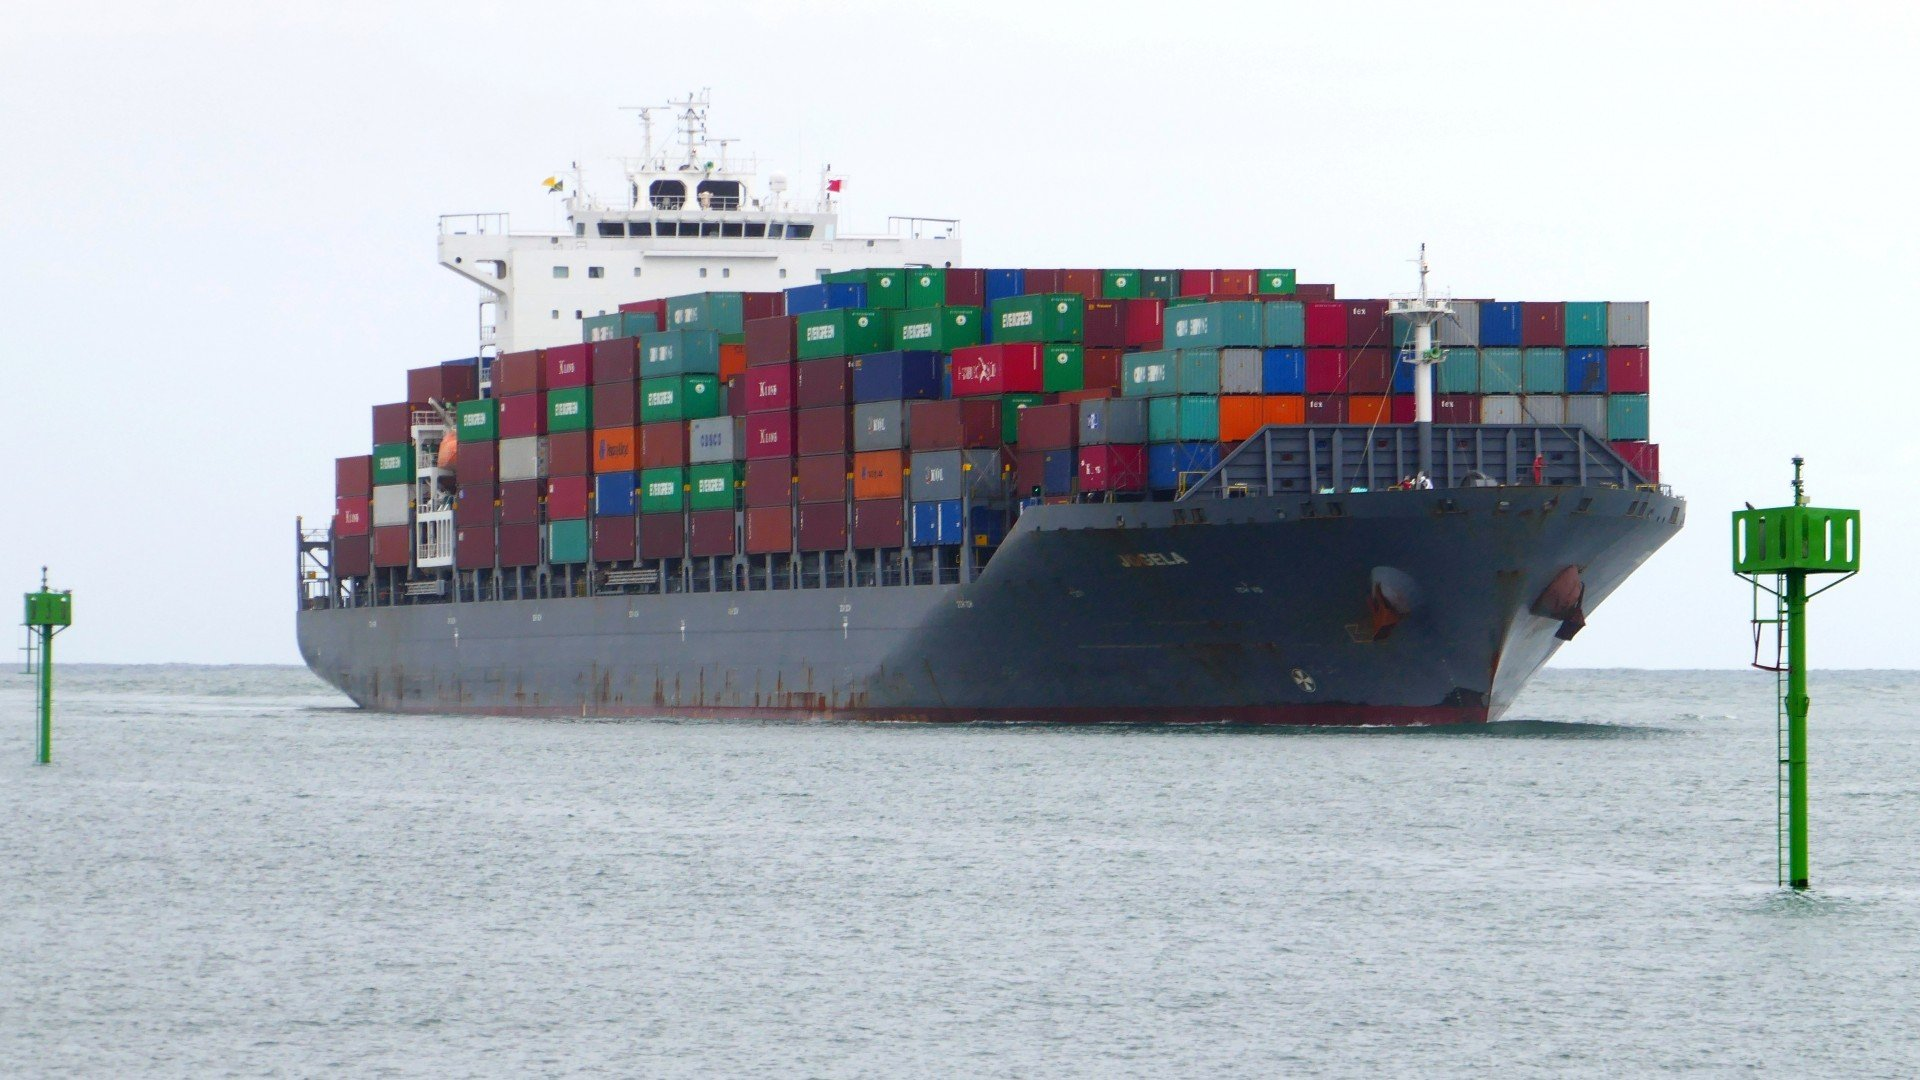 Portuguese registered container vessel Jogela in Durban harbour mouth